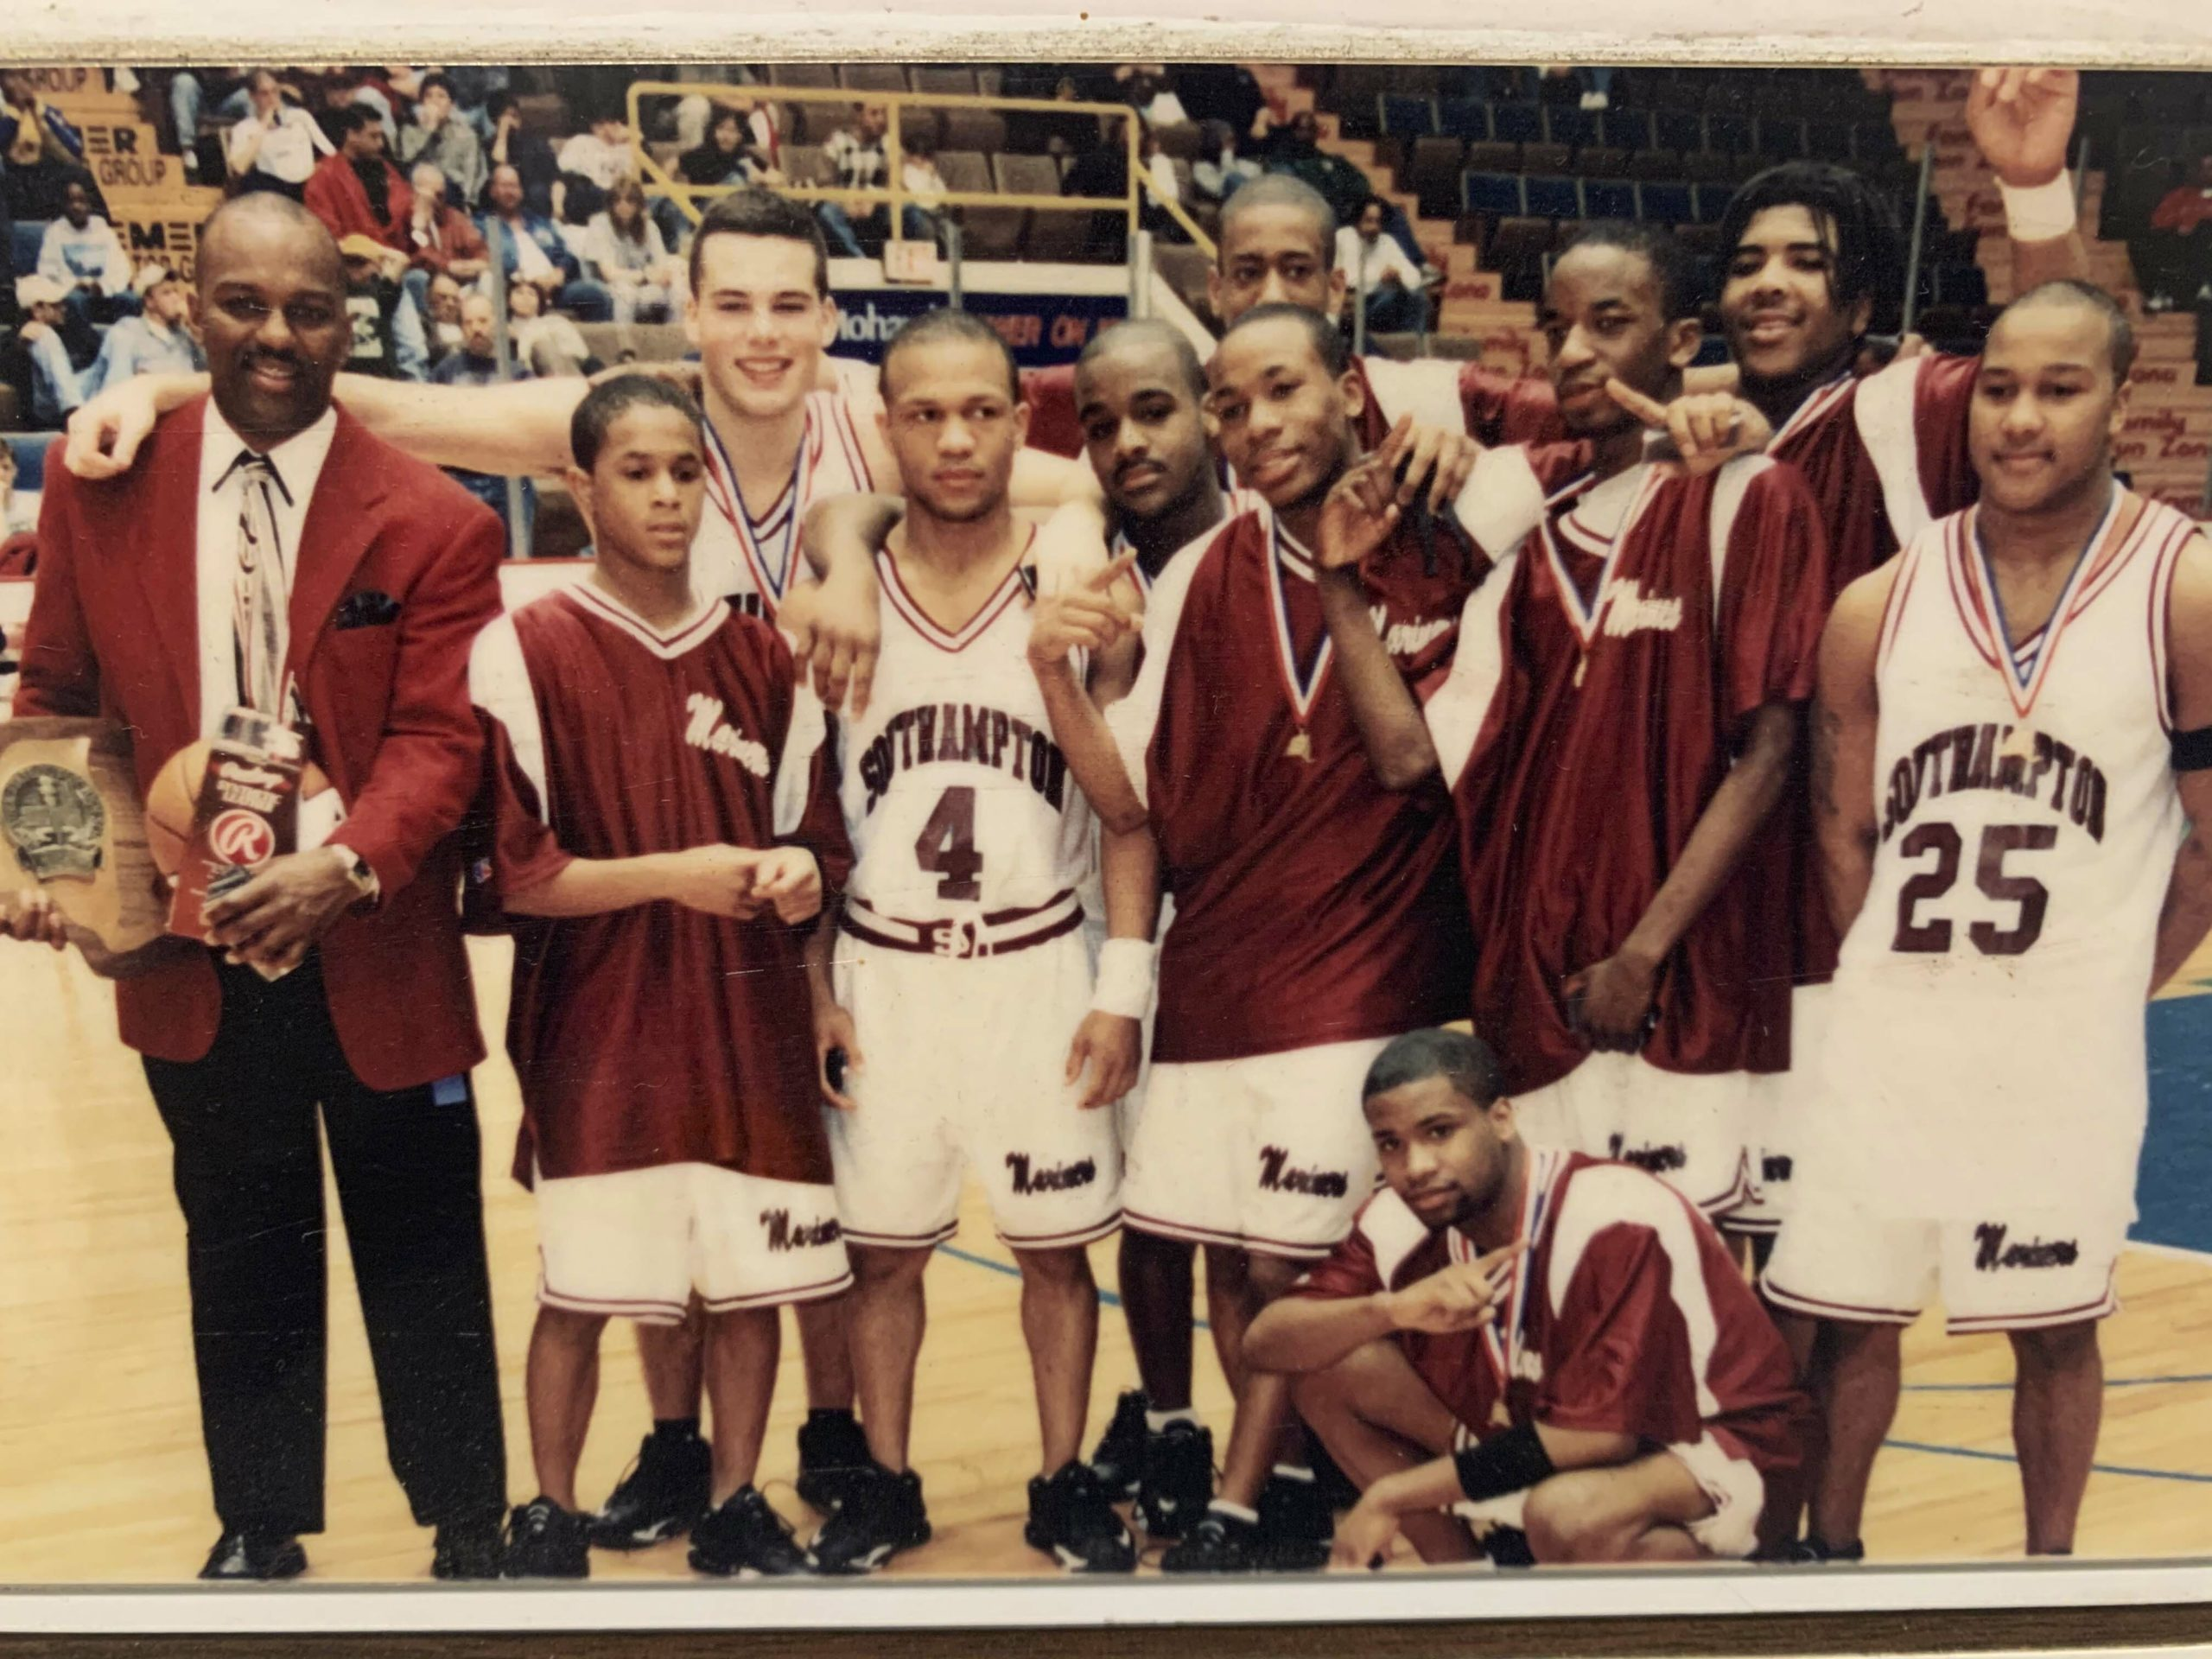 Courtney Pritchard, fifth from left, with his Southampton teammates and head coach Herm Lamison (far left) after winning the New York State Class B Championship in 2000.